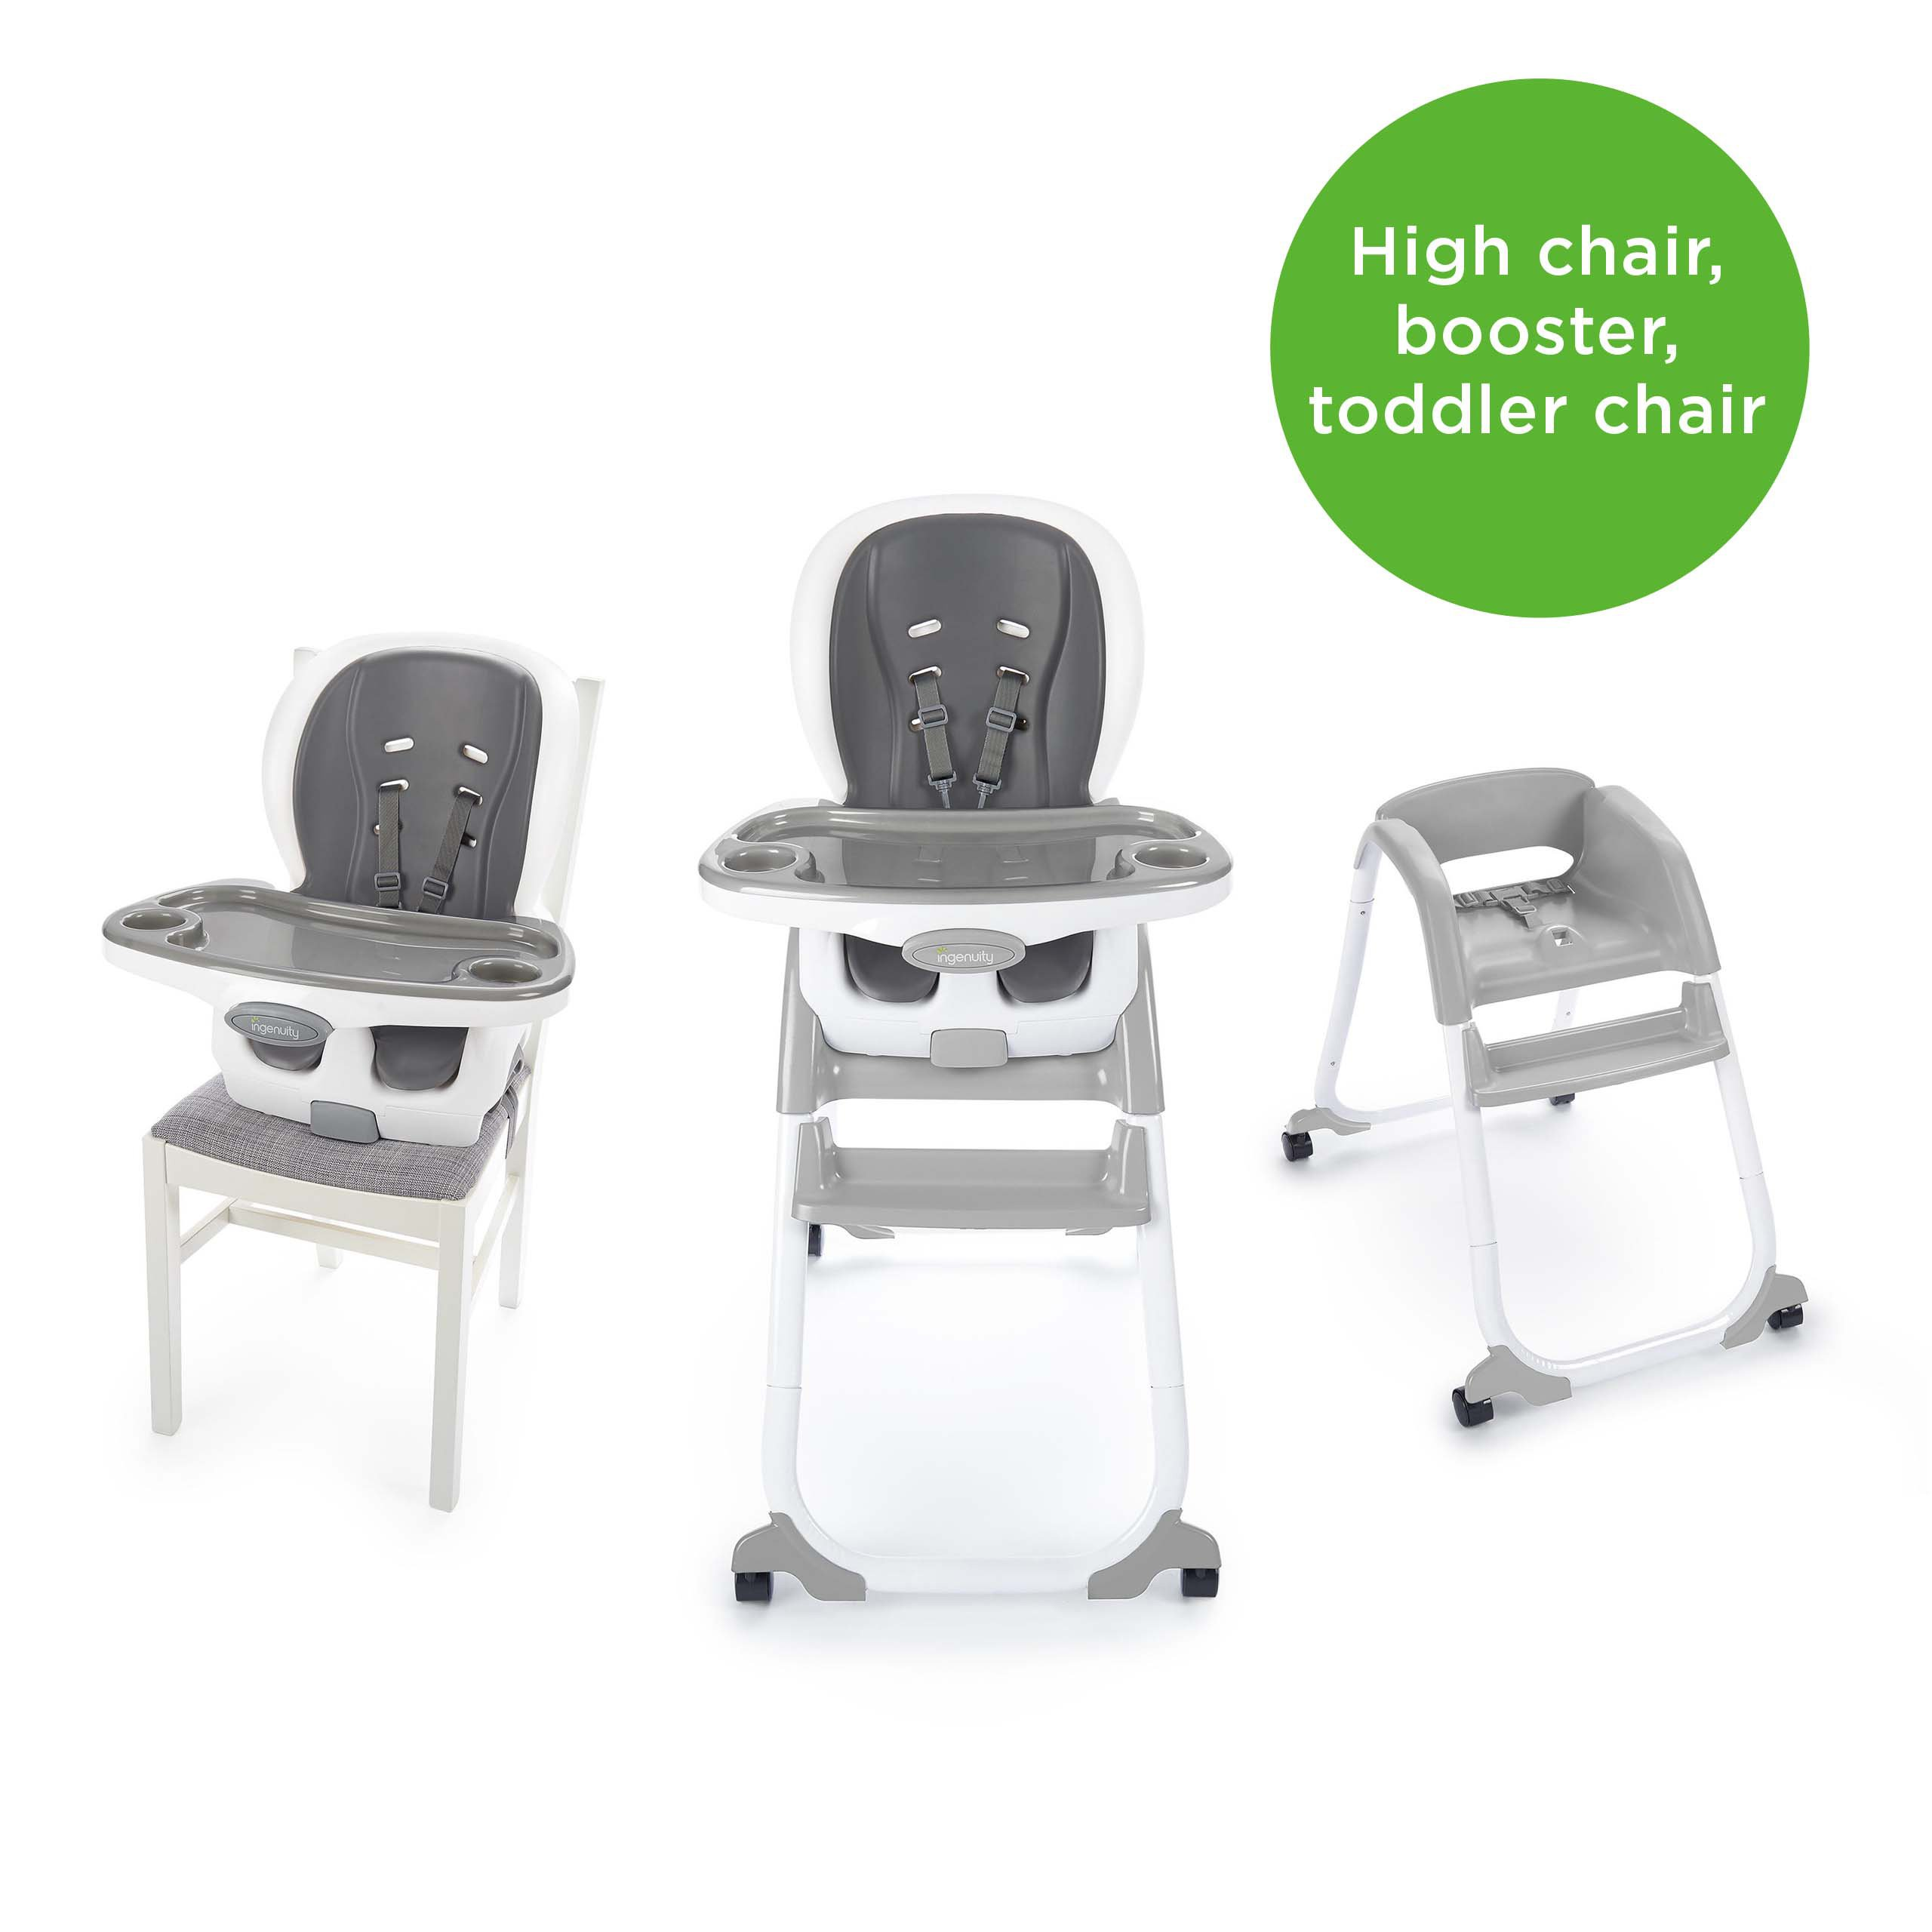 Ingenuity SmartClean Trio Elite 3-in-1 High Chair - Slate - High Chair, Toddler Chair, and Booster by Ingenuity (Image #2)